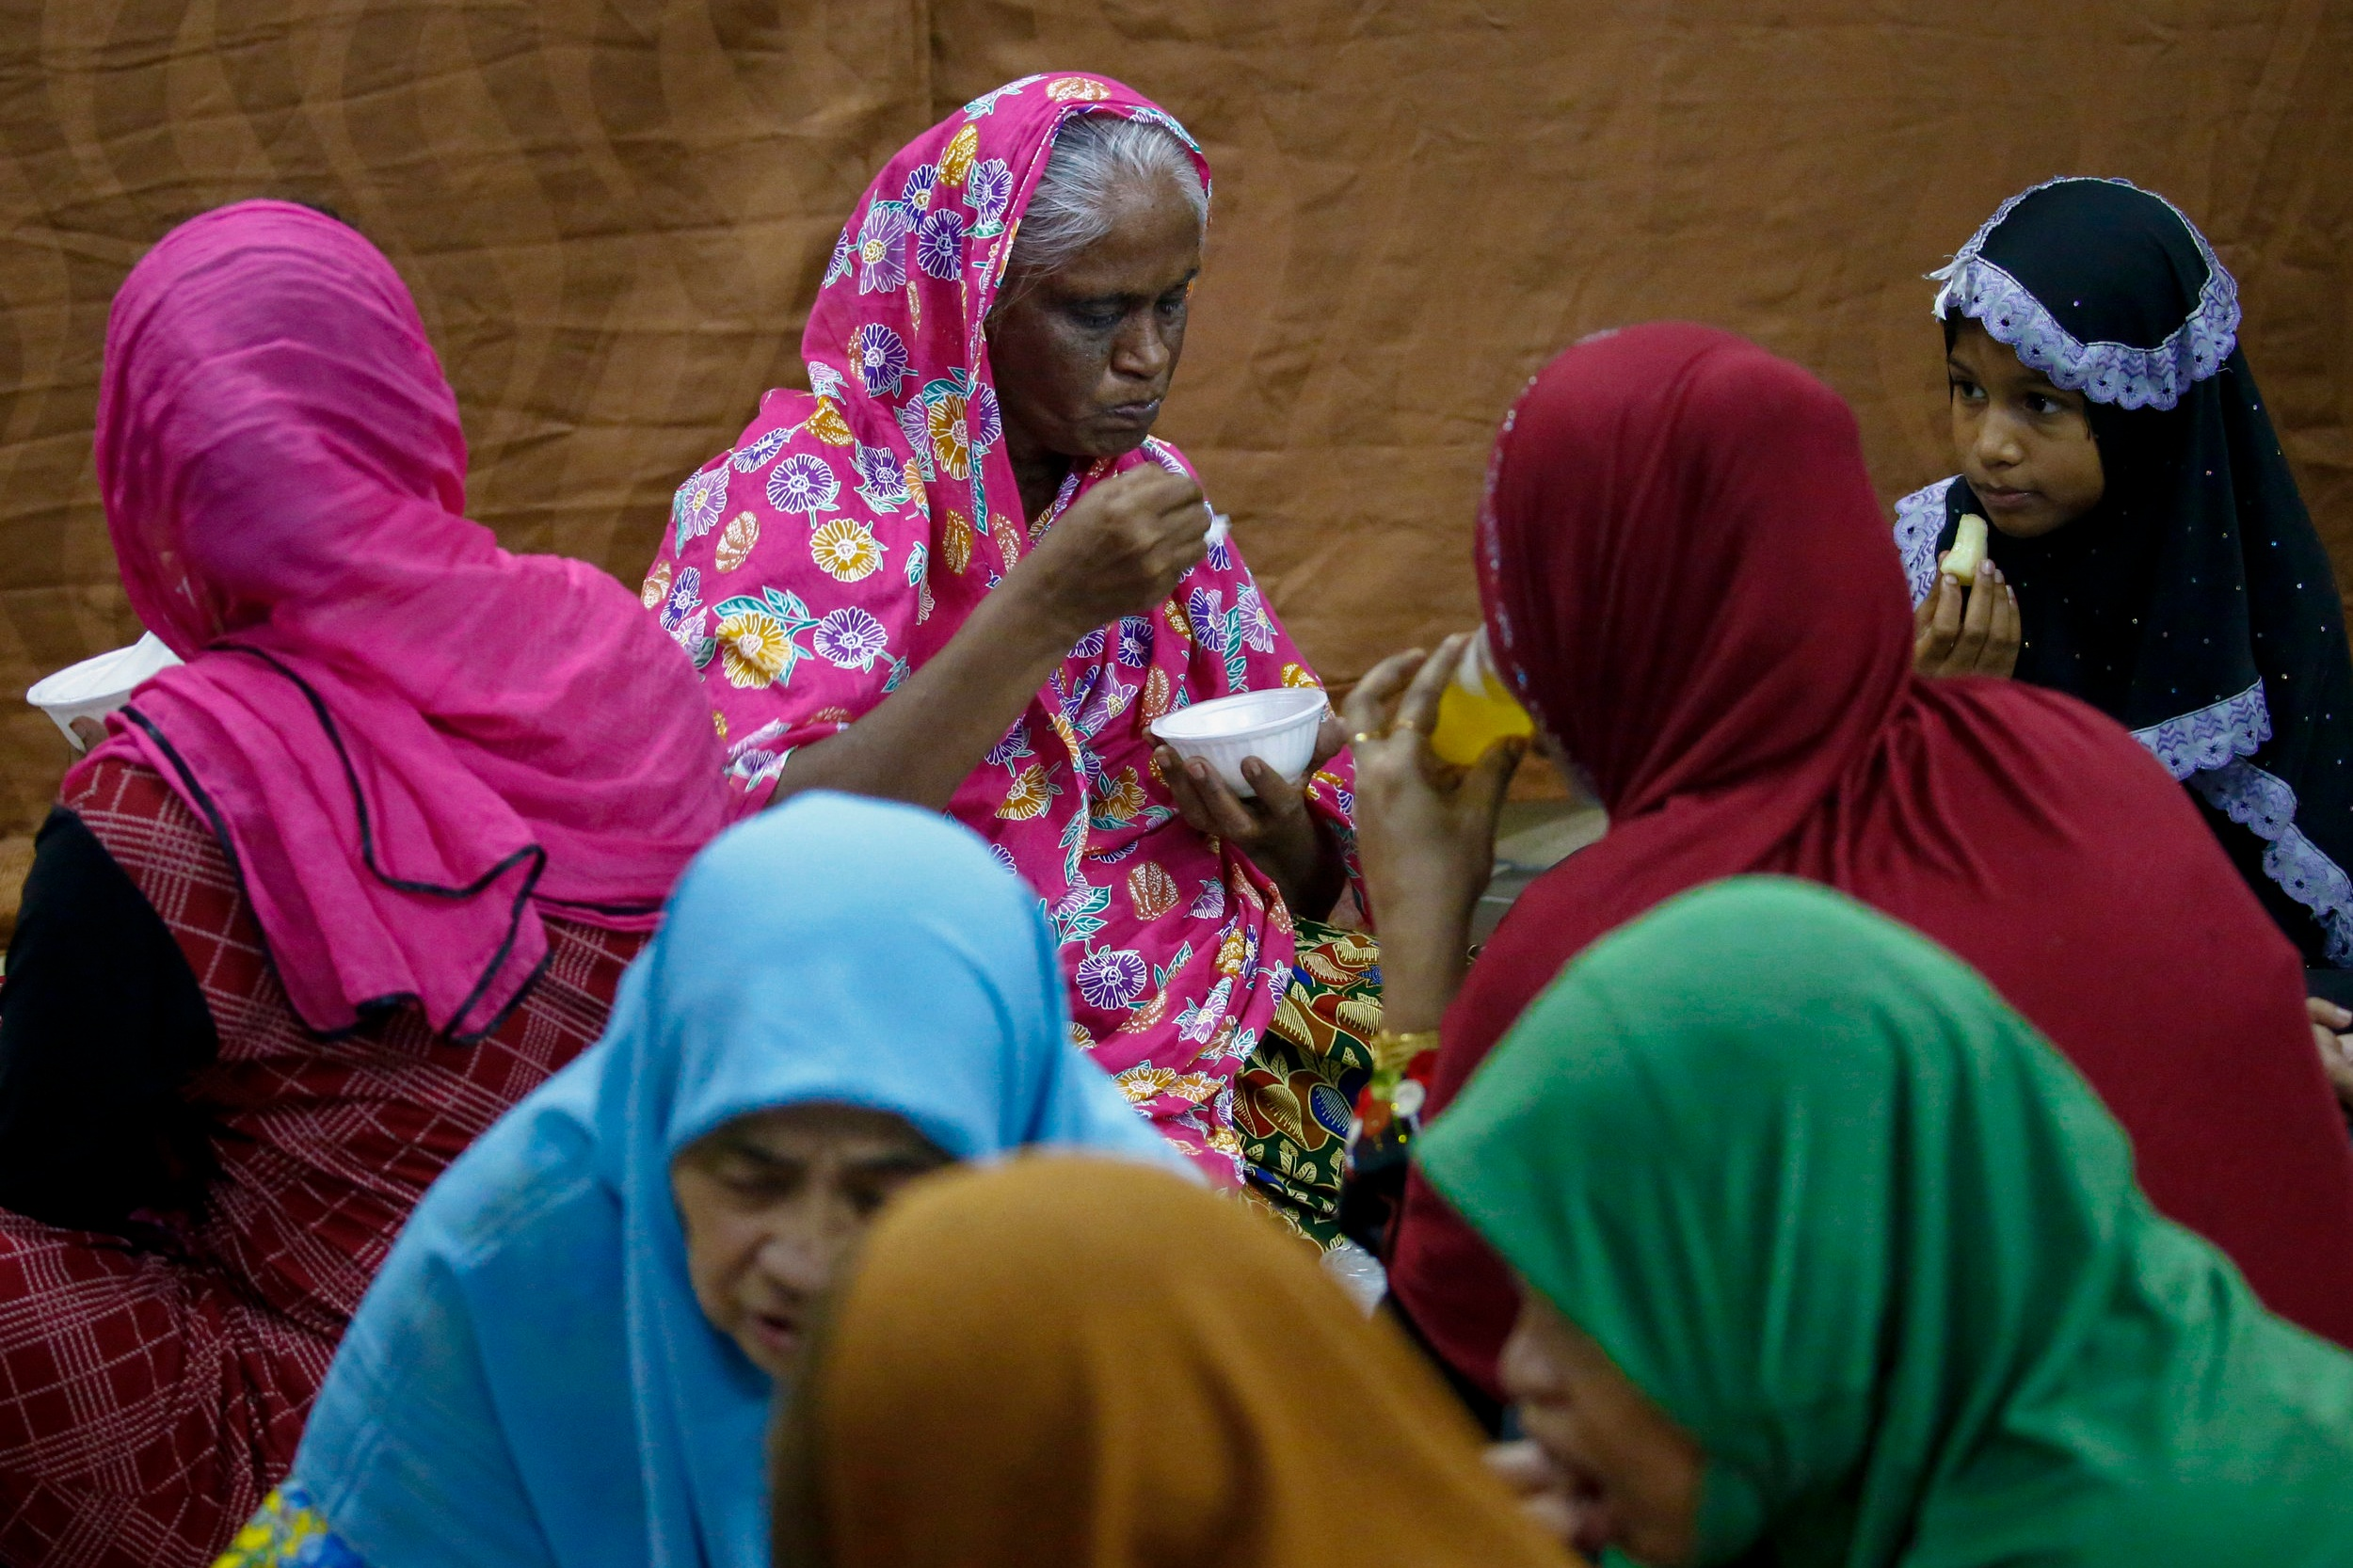 Women break fast on the first day of the holy fasting month of Ramadan at the Darul Makmur Mosque in Singapore, May 17, 2018. REUTERS/Feline Lim